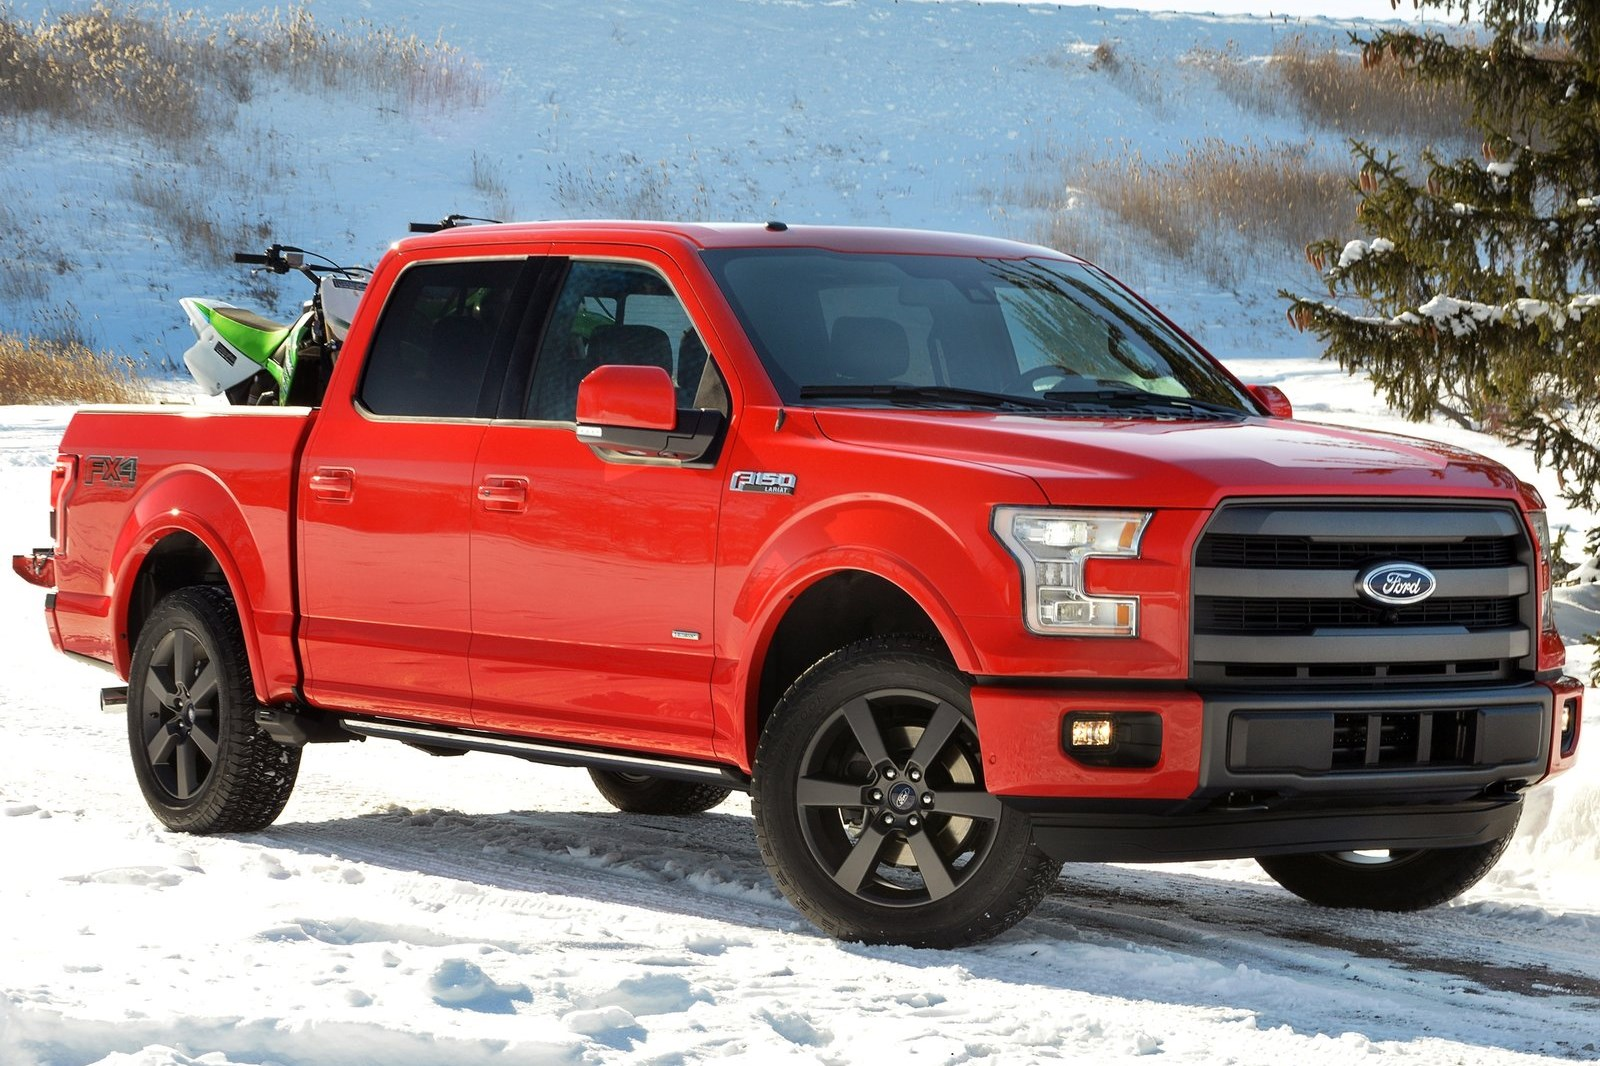 2019 Ford Excursion photo - 3